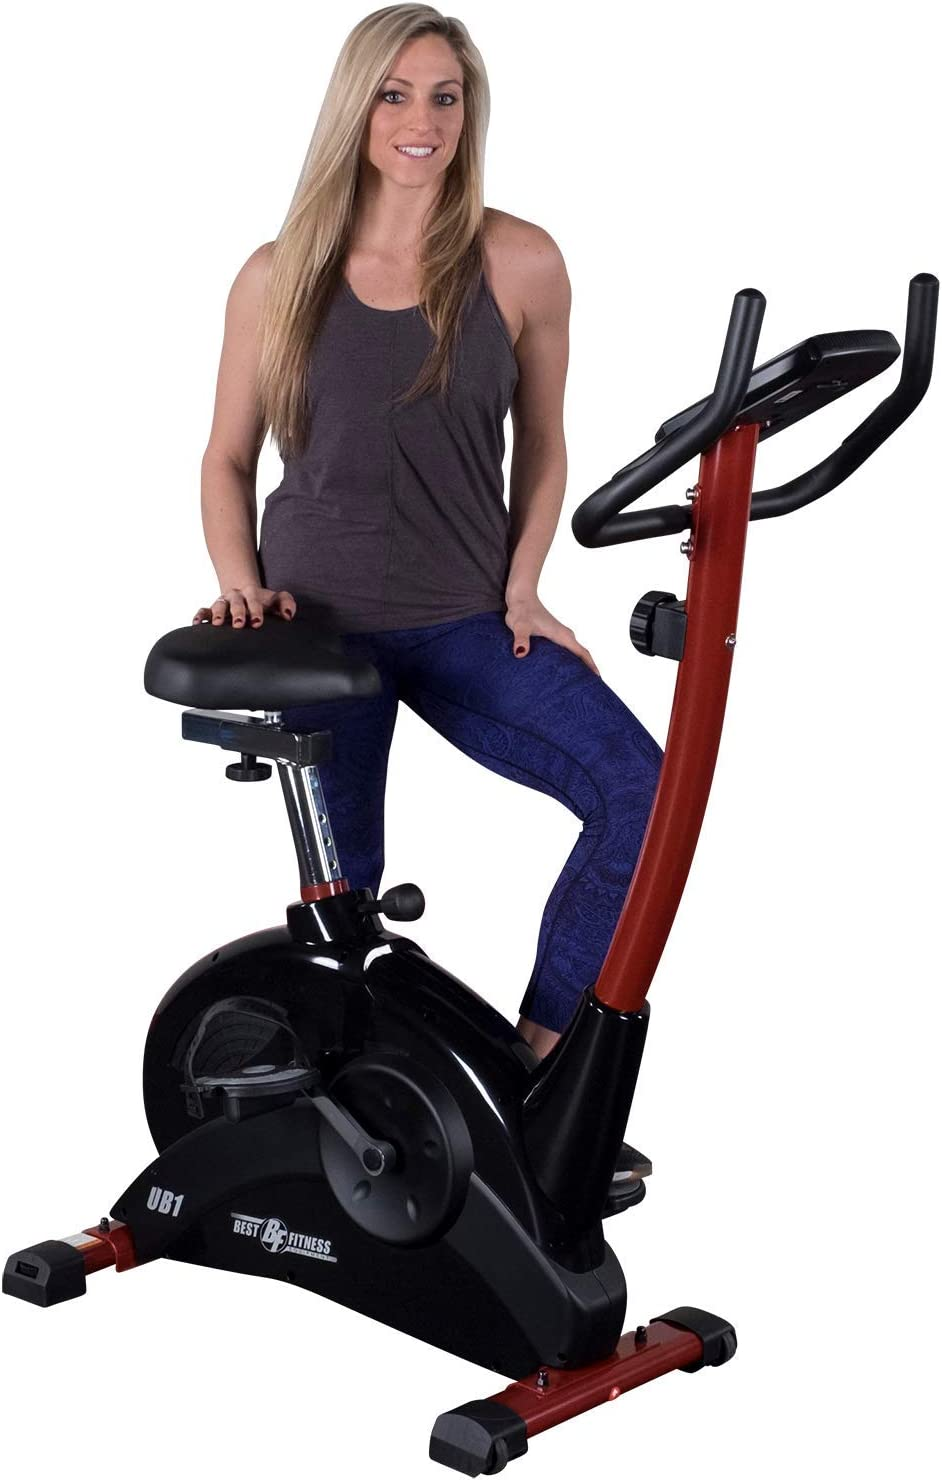 Body-Solid Best Fitness Upright Bike BFUB1